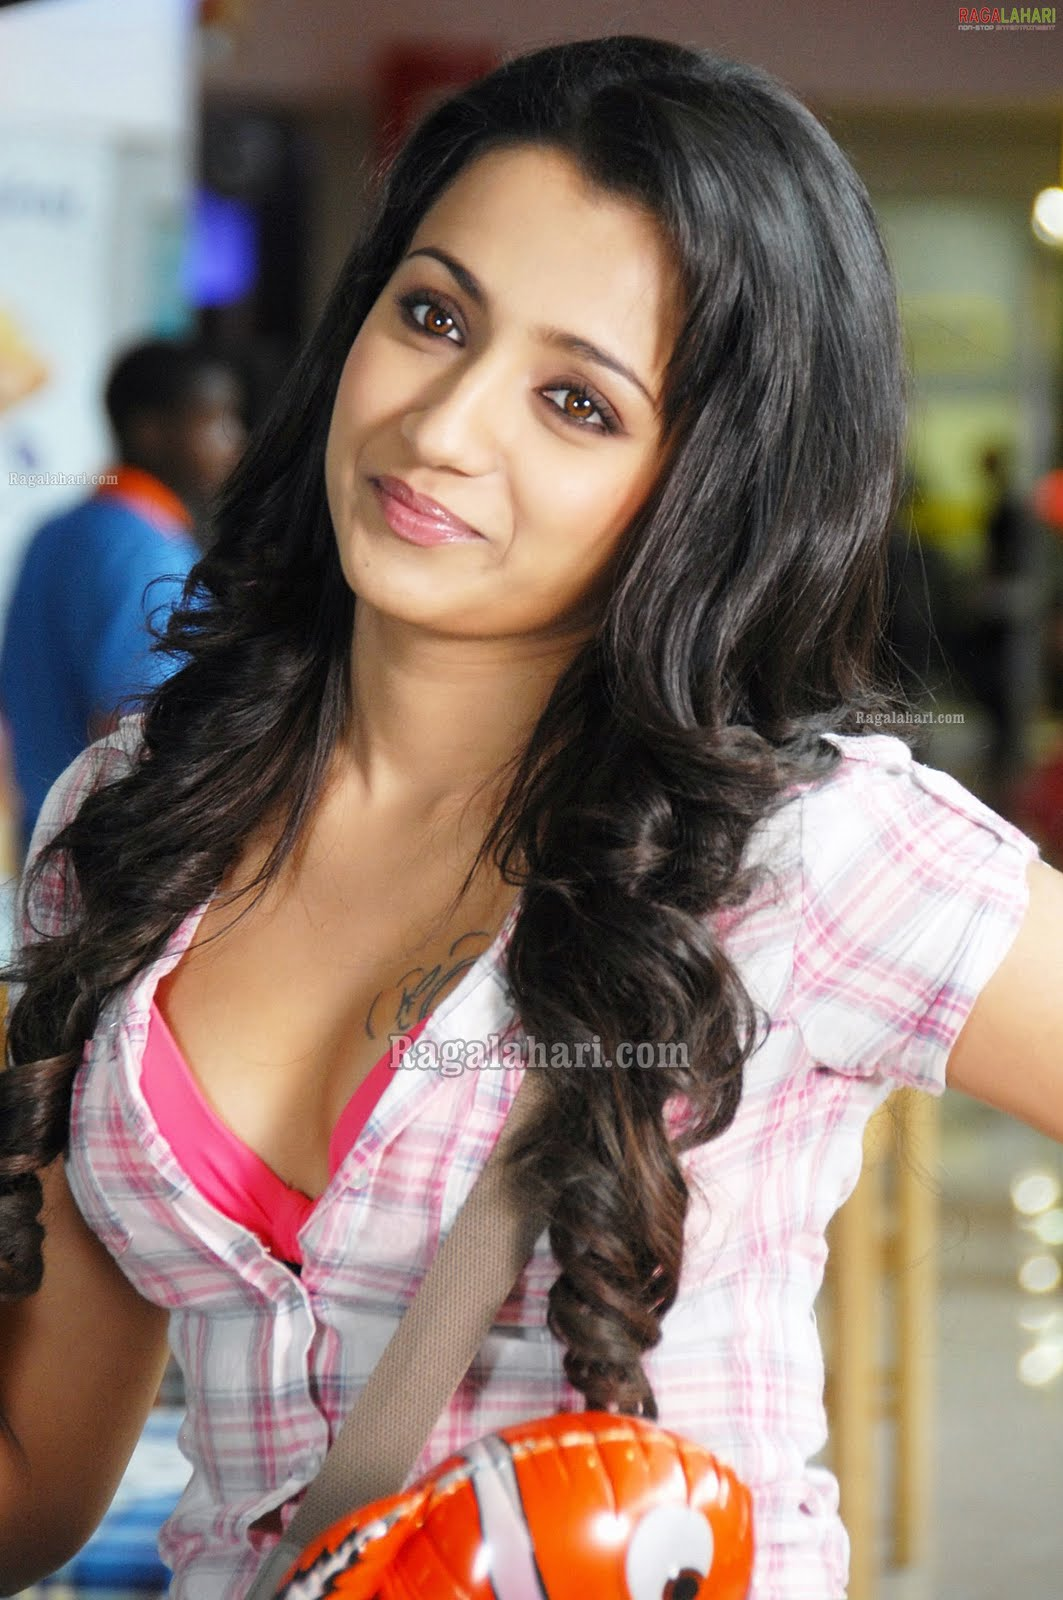 Hot+images+of+trisha